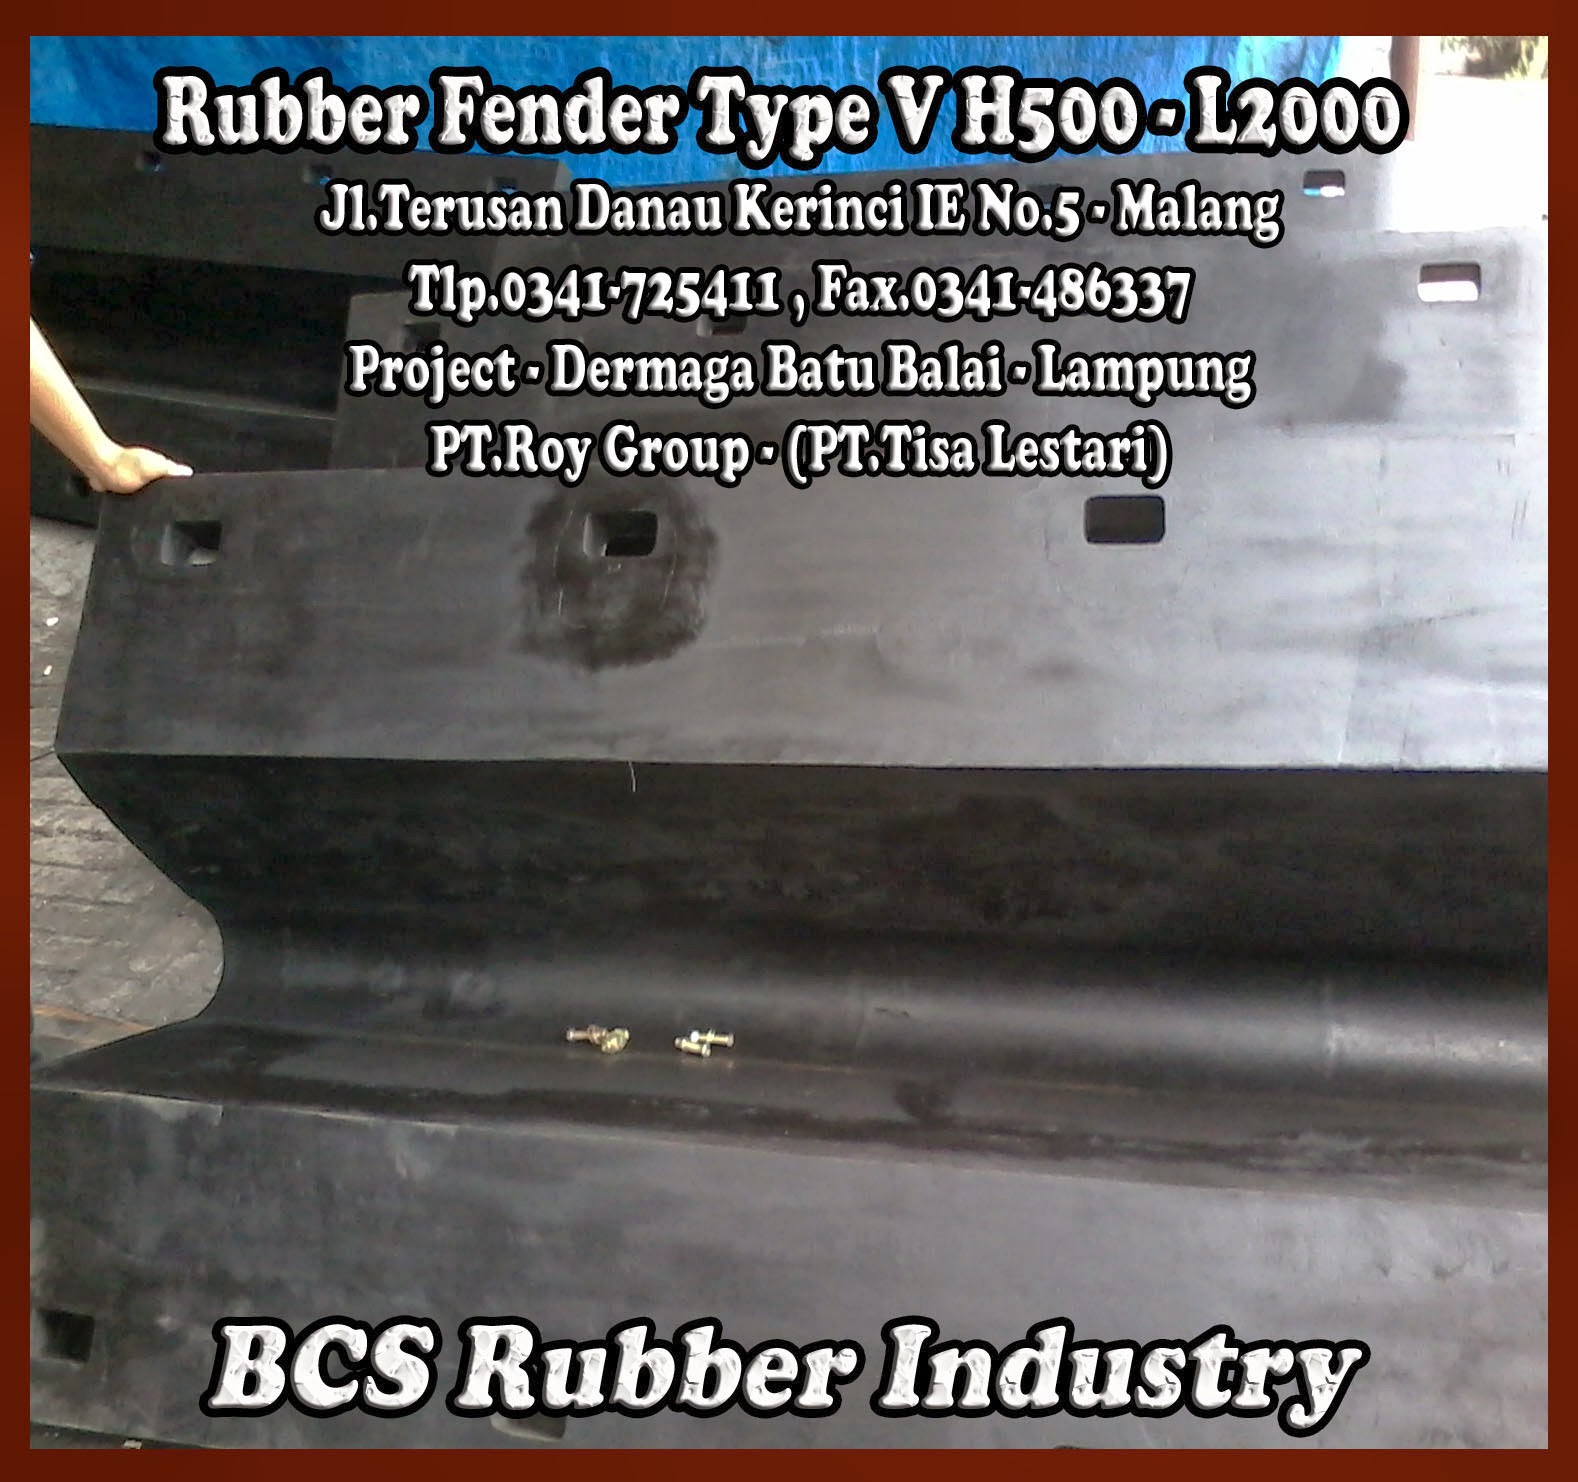 Rubber Fender V - Rubber Fender Arch - BCS Rubber Industry Malang